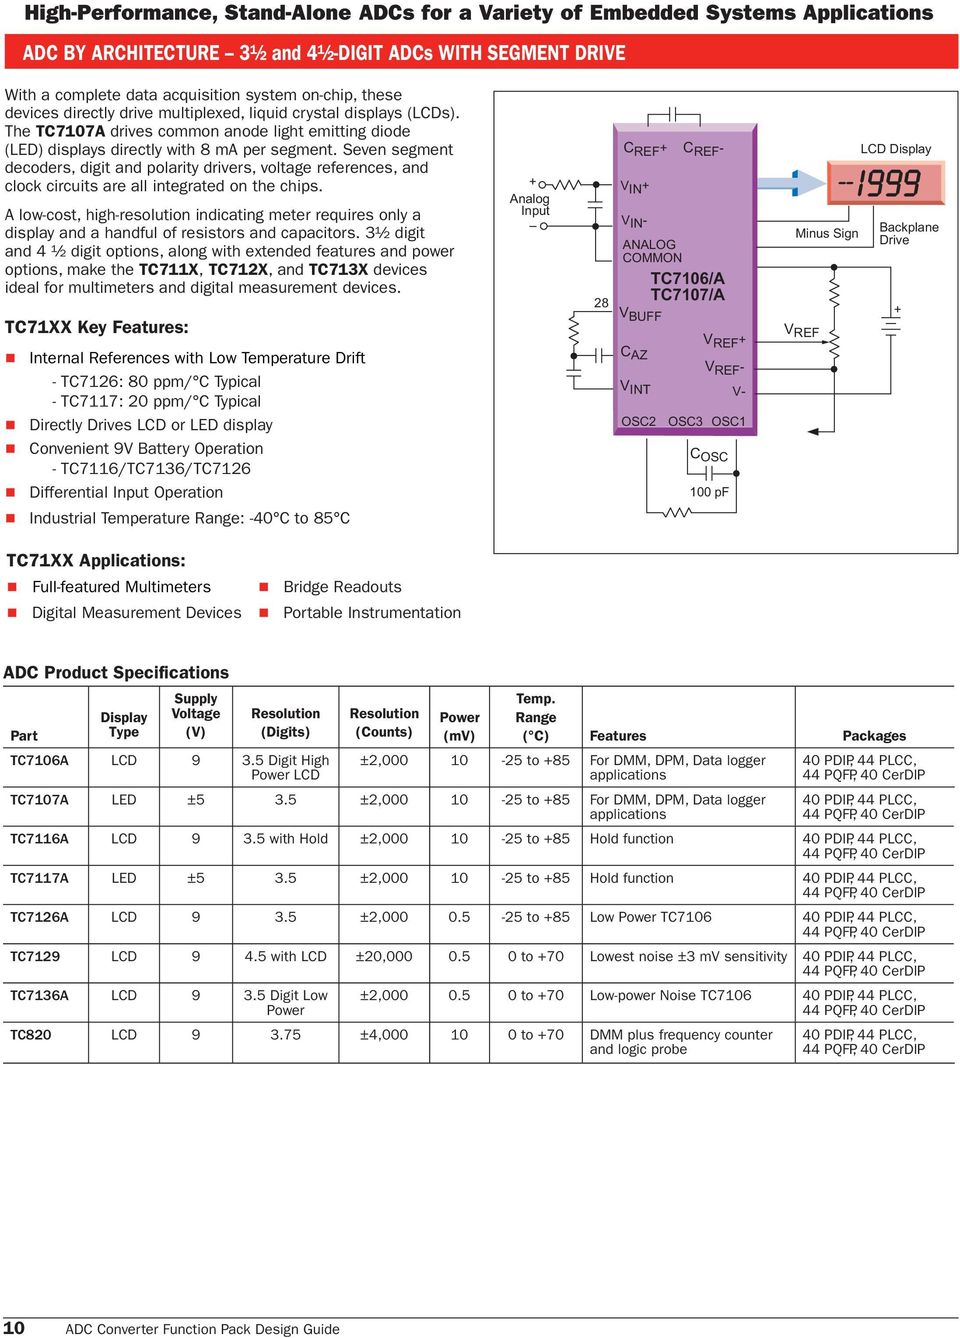 Analog To Digital Converter Design Guide Pdf Icl7135 Typical Application Schematic Diagram And Datasheet Seven Segment Decoders Digit Polarity Drivers Voltage References Clock Circuits Are